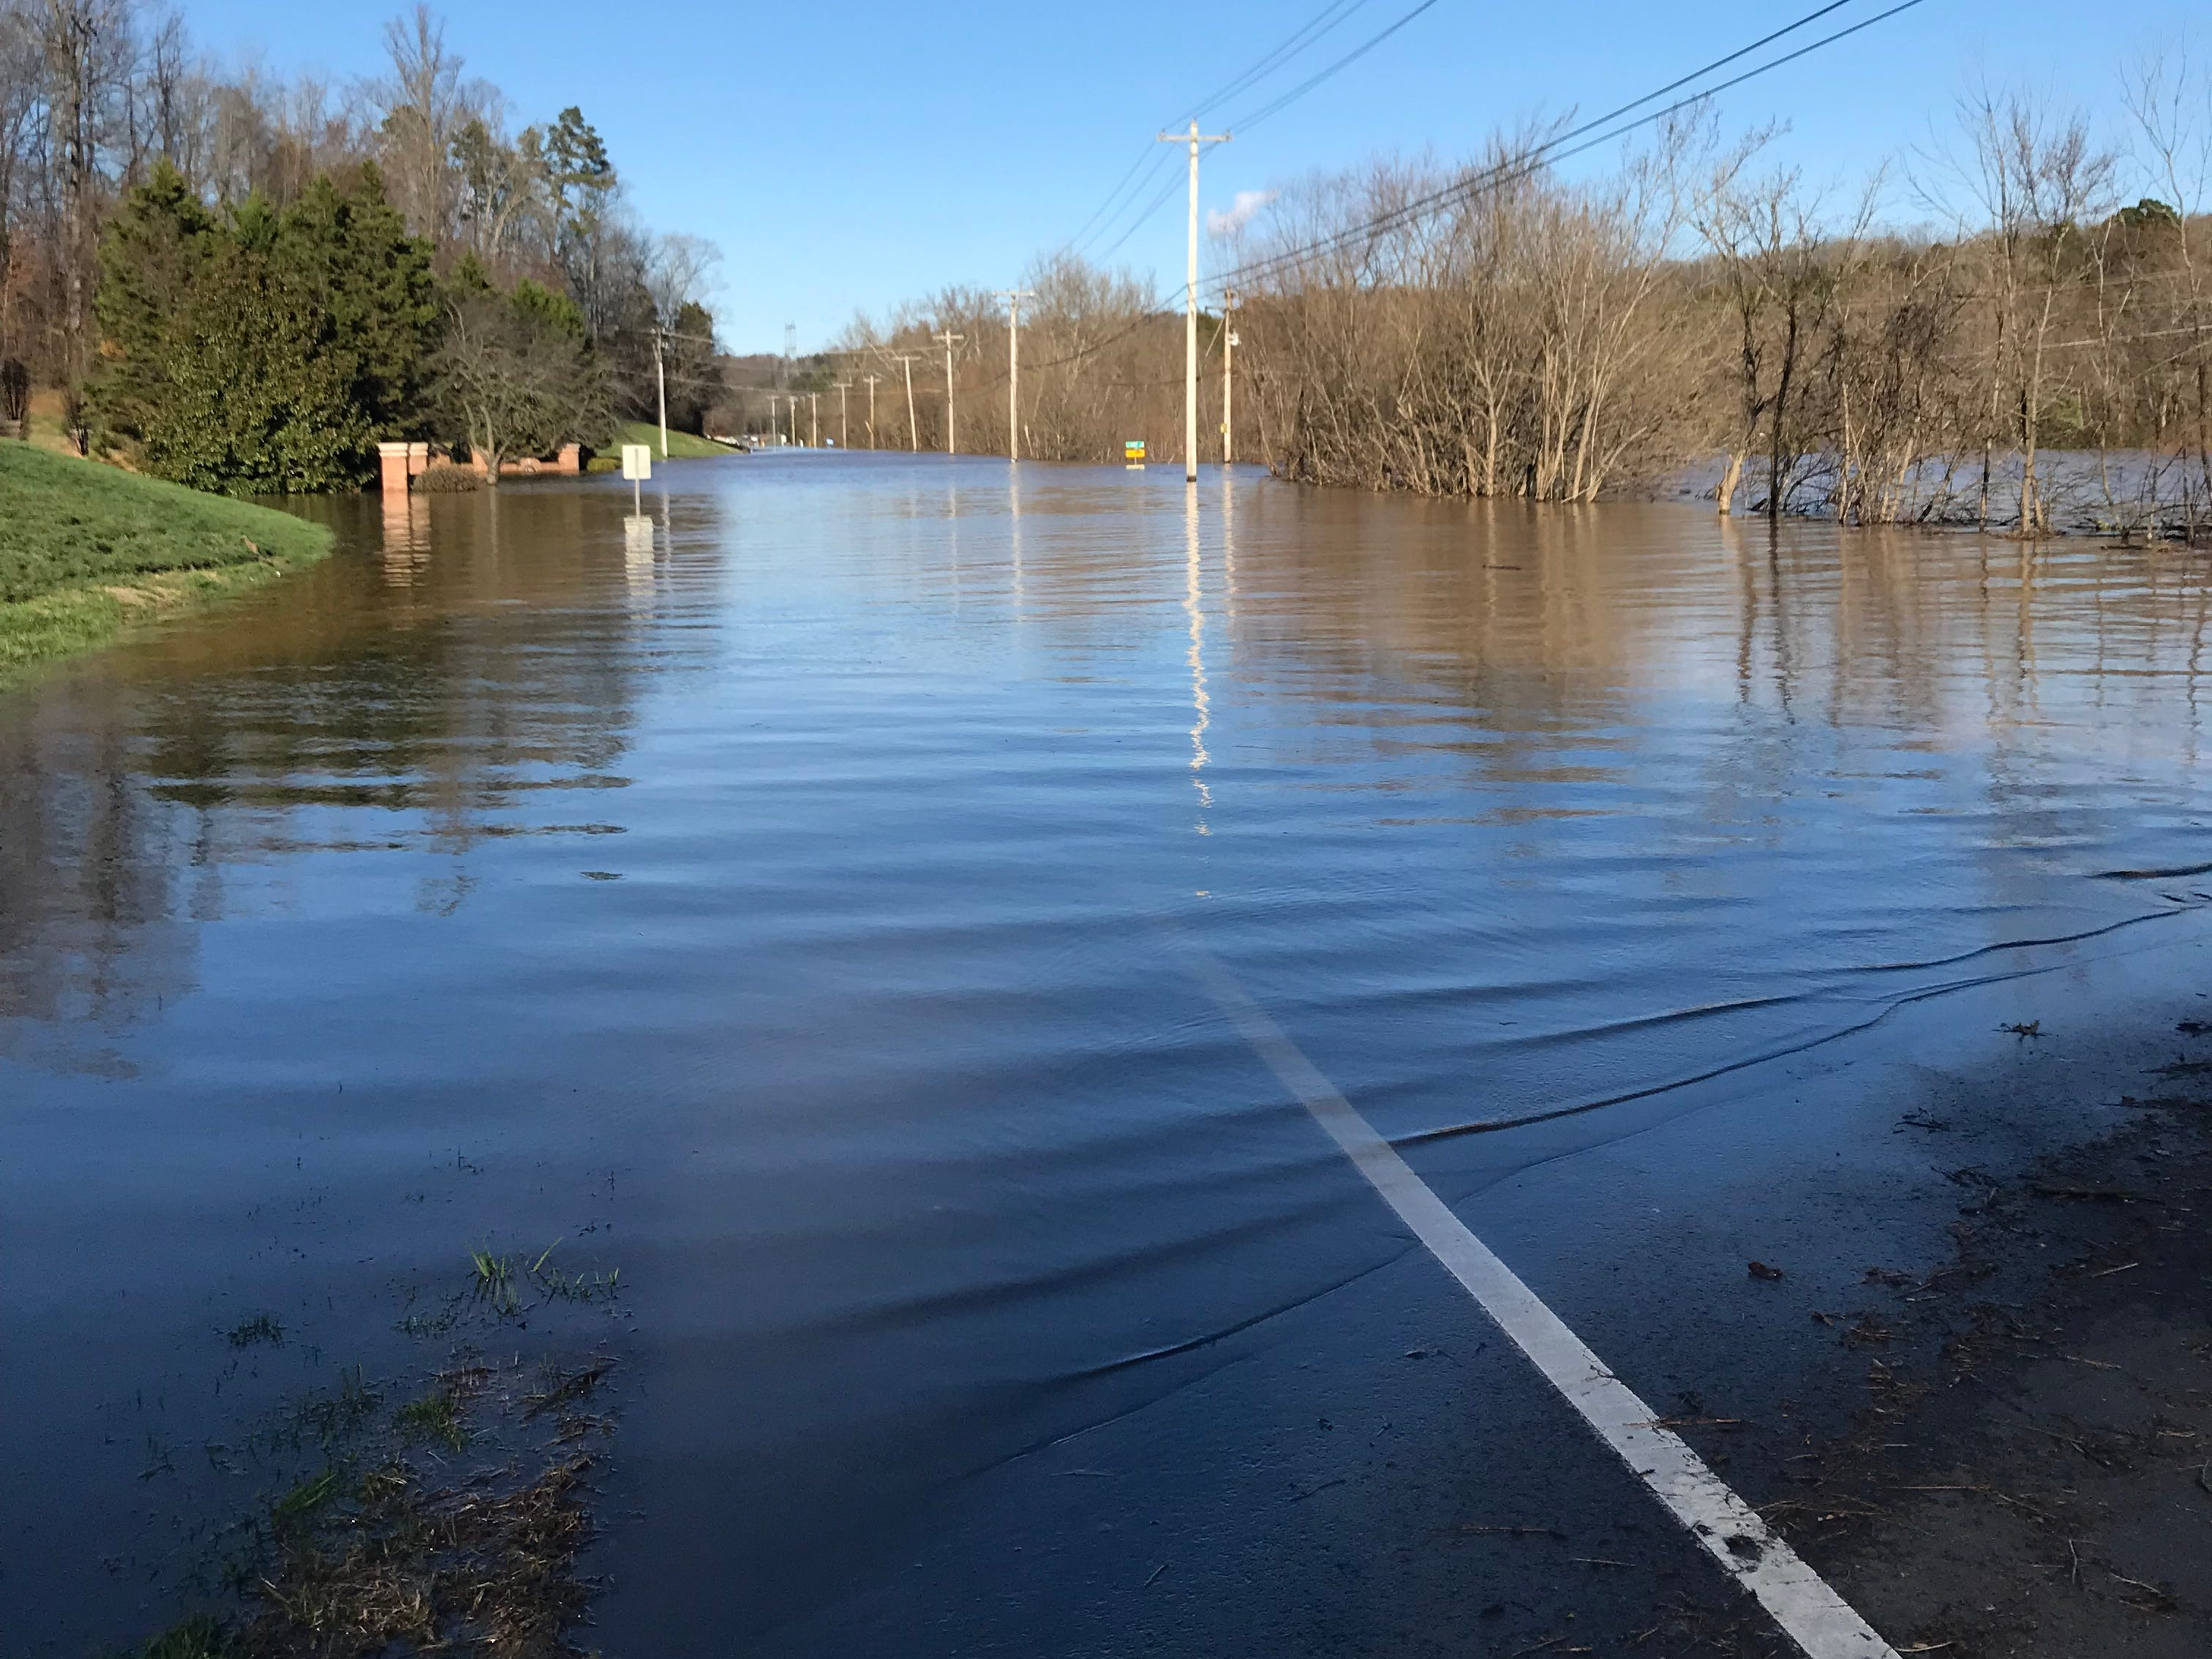 Northshore Drive, usually a busy state two-lane road in west Knox County, was a large lake at the most western entrance of the Whittington Creek subdivision late Sunday afternoon. Street signs were barely above water.